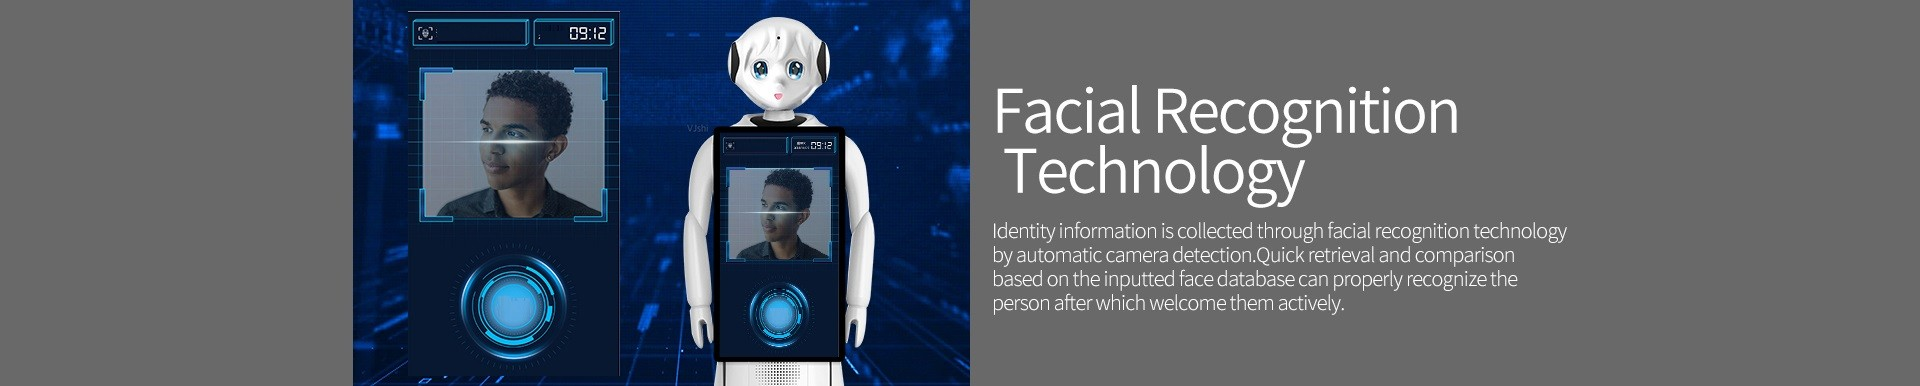 Intelligent Humanoid Reception Telepresence Robot SIFROBOT-5.0  Facial recognition technology feature Telepresence Robot